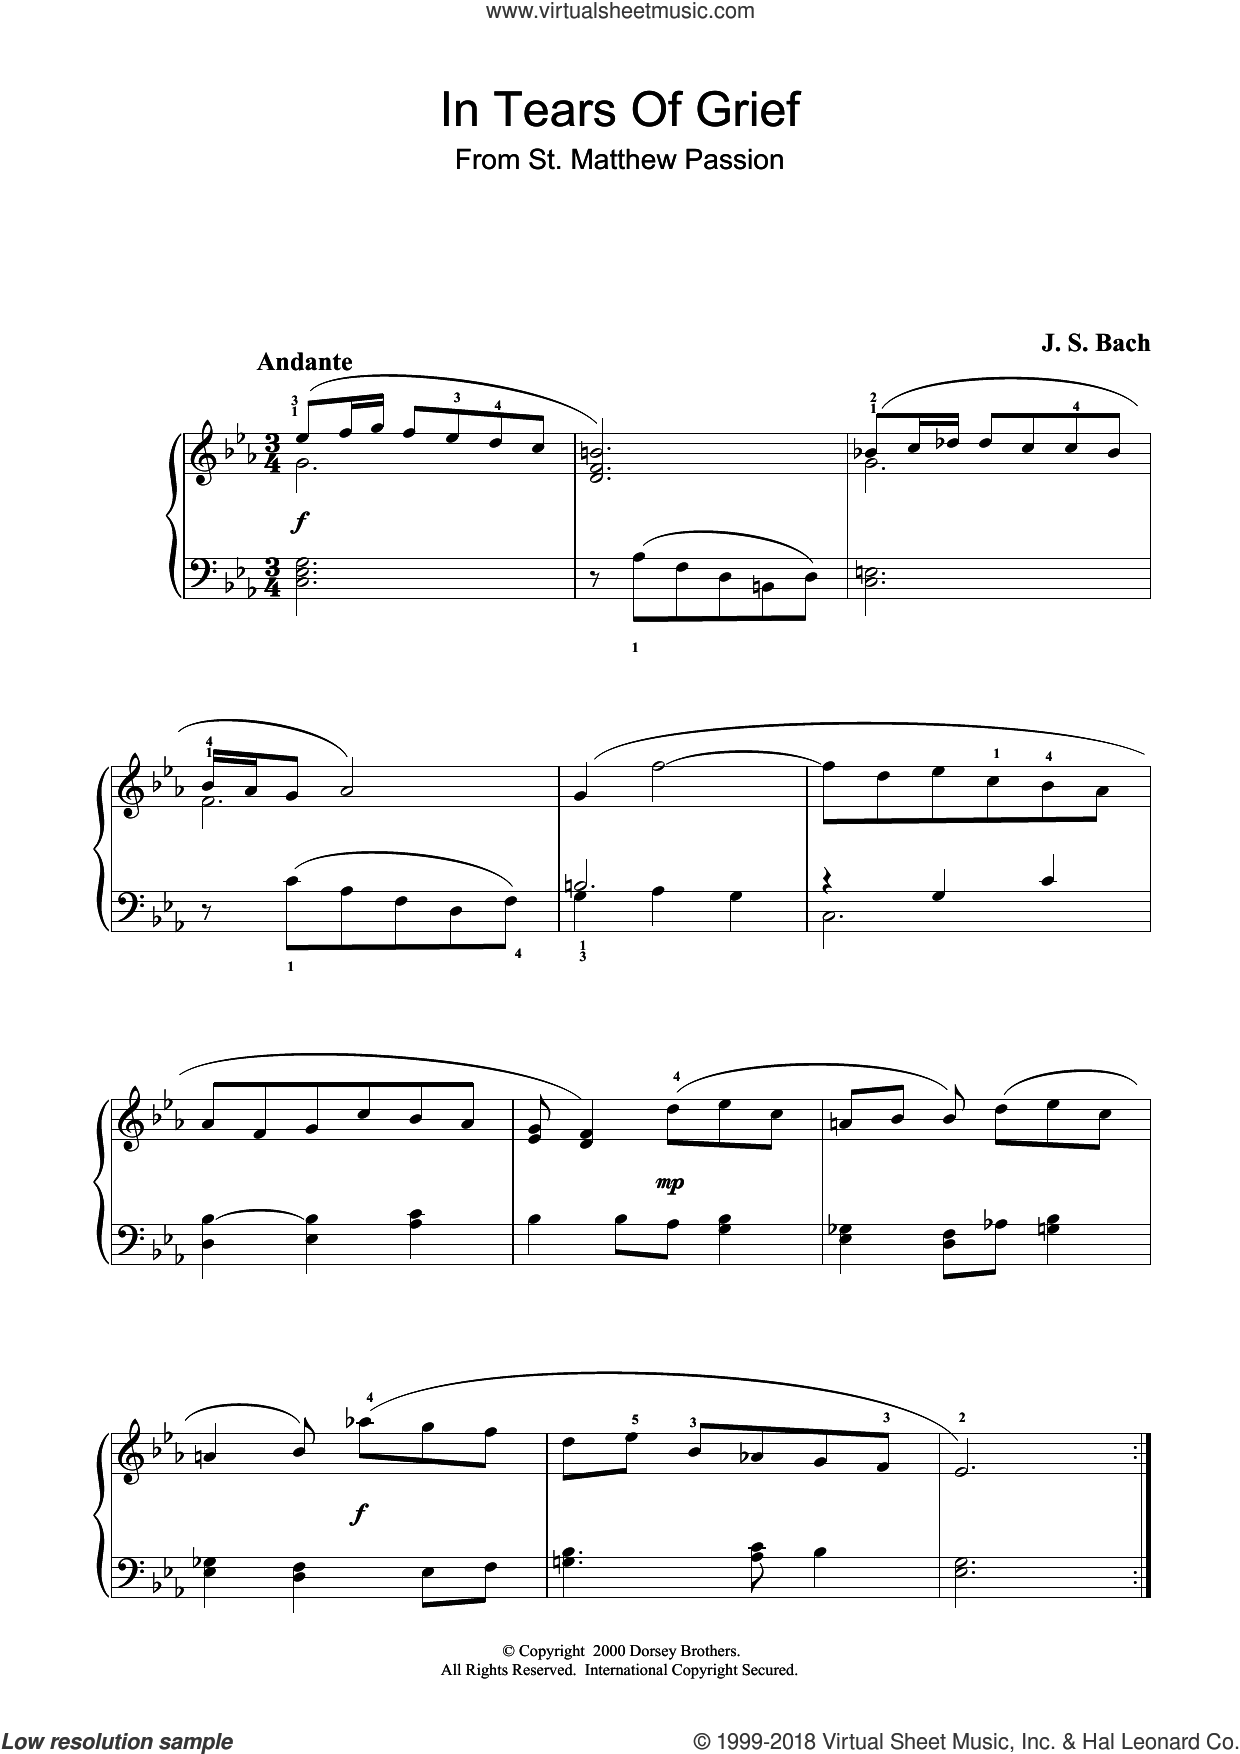 In Tears Of Grief sheet music for piano solo by Johann Sebastian Bach. Score Image Preview.